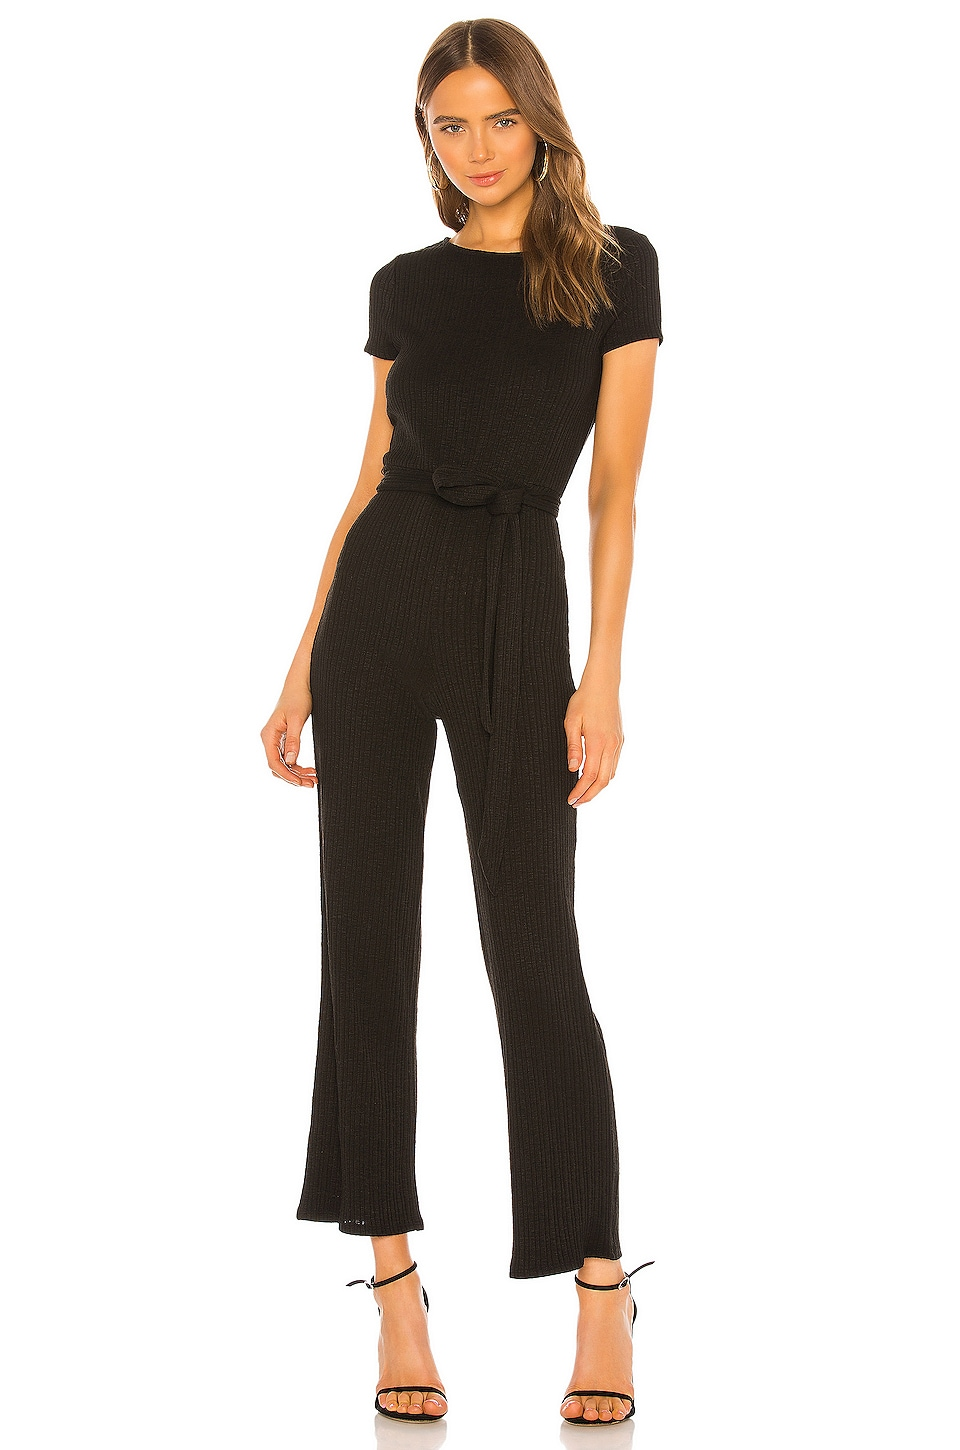 Lovers + Friends Lulu Jumpsuit in Black